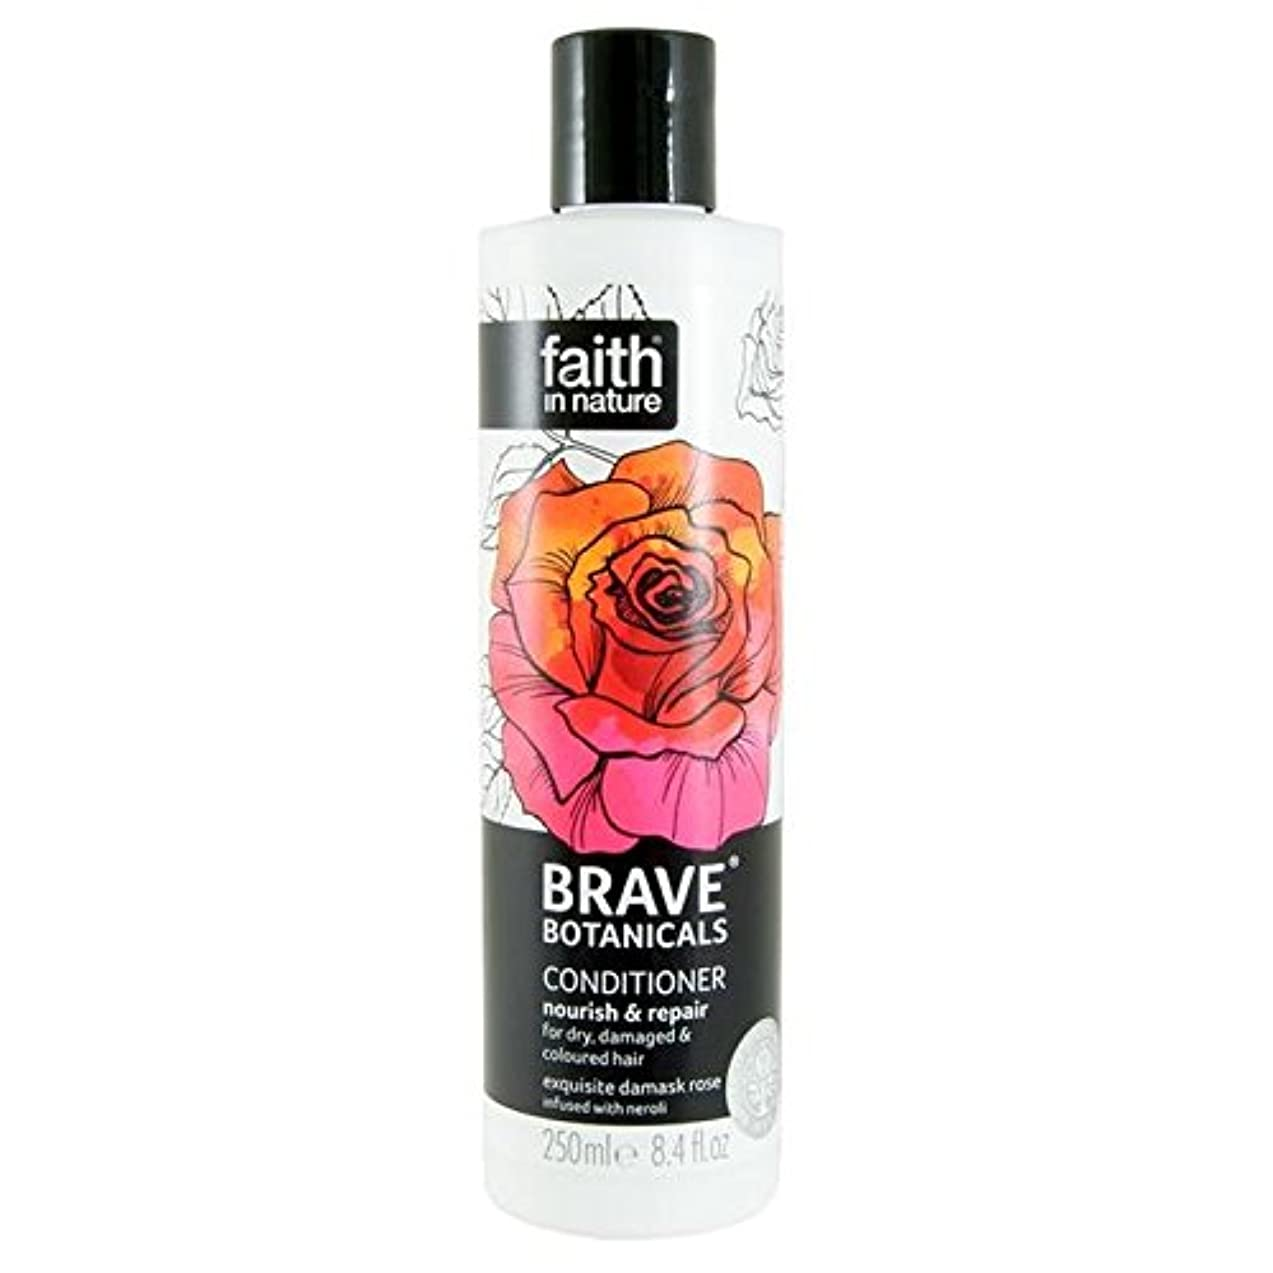 開拓者優越リラックスしたBrave Botanicals Rose & Neroli Nourish & Repair Conditioner 250ml (Pack of 2) - (Faith In Nature) 勇敢な植物は、ローズ&ネロリ...